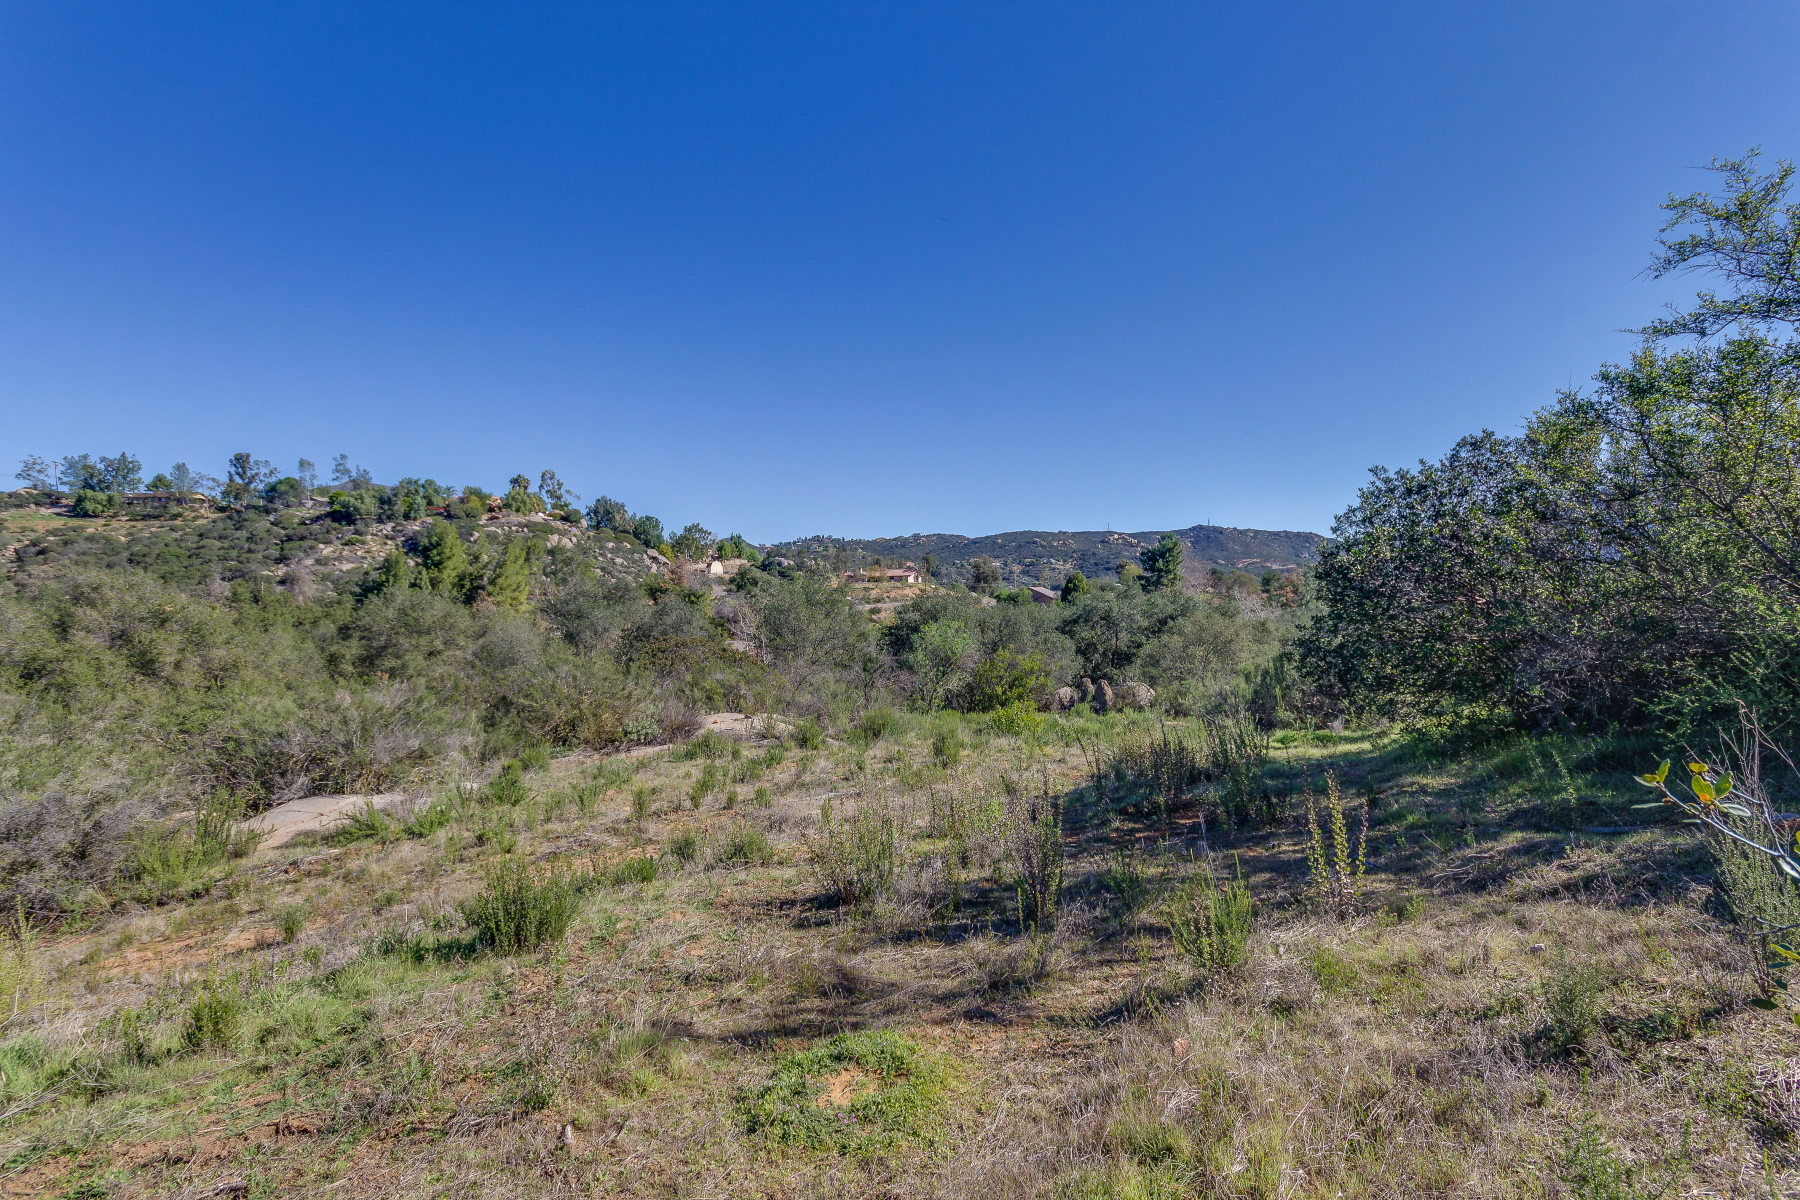 Land for Sale at Via Viejas Oeste Lot 40 Via Viejas Oeste Lot 40 Alpine, California 91901 United States